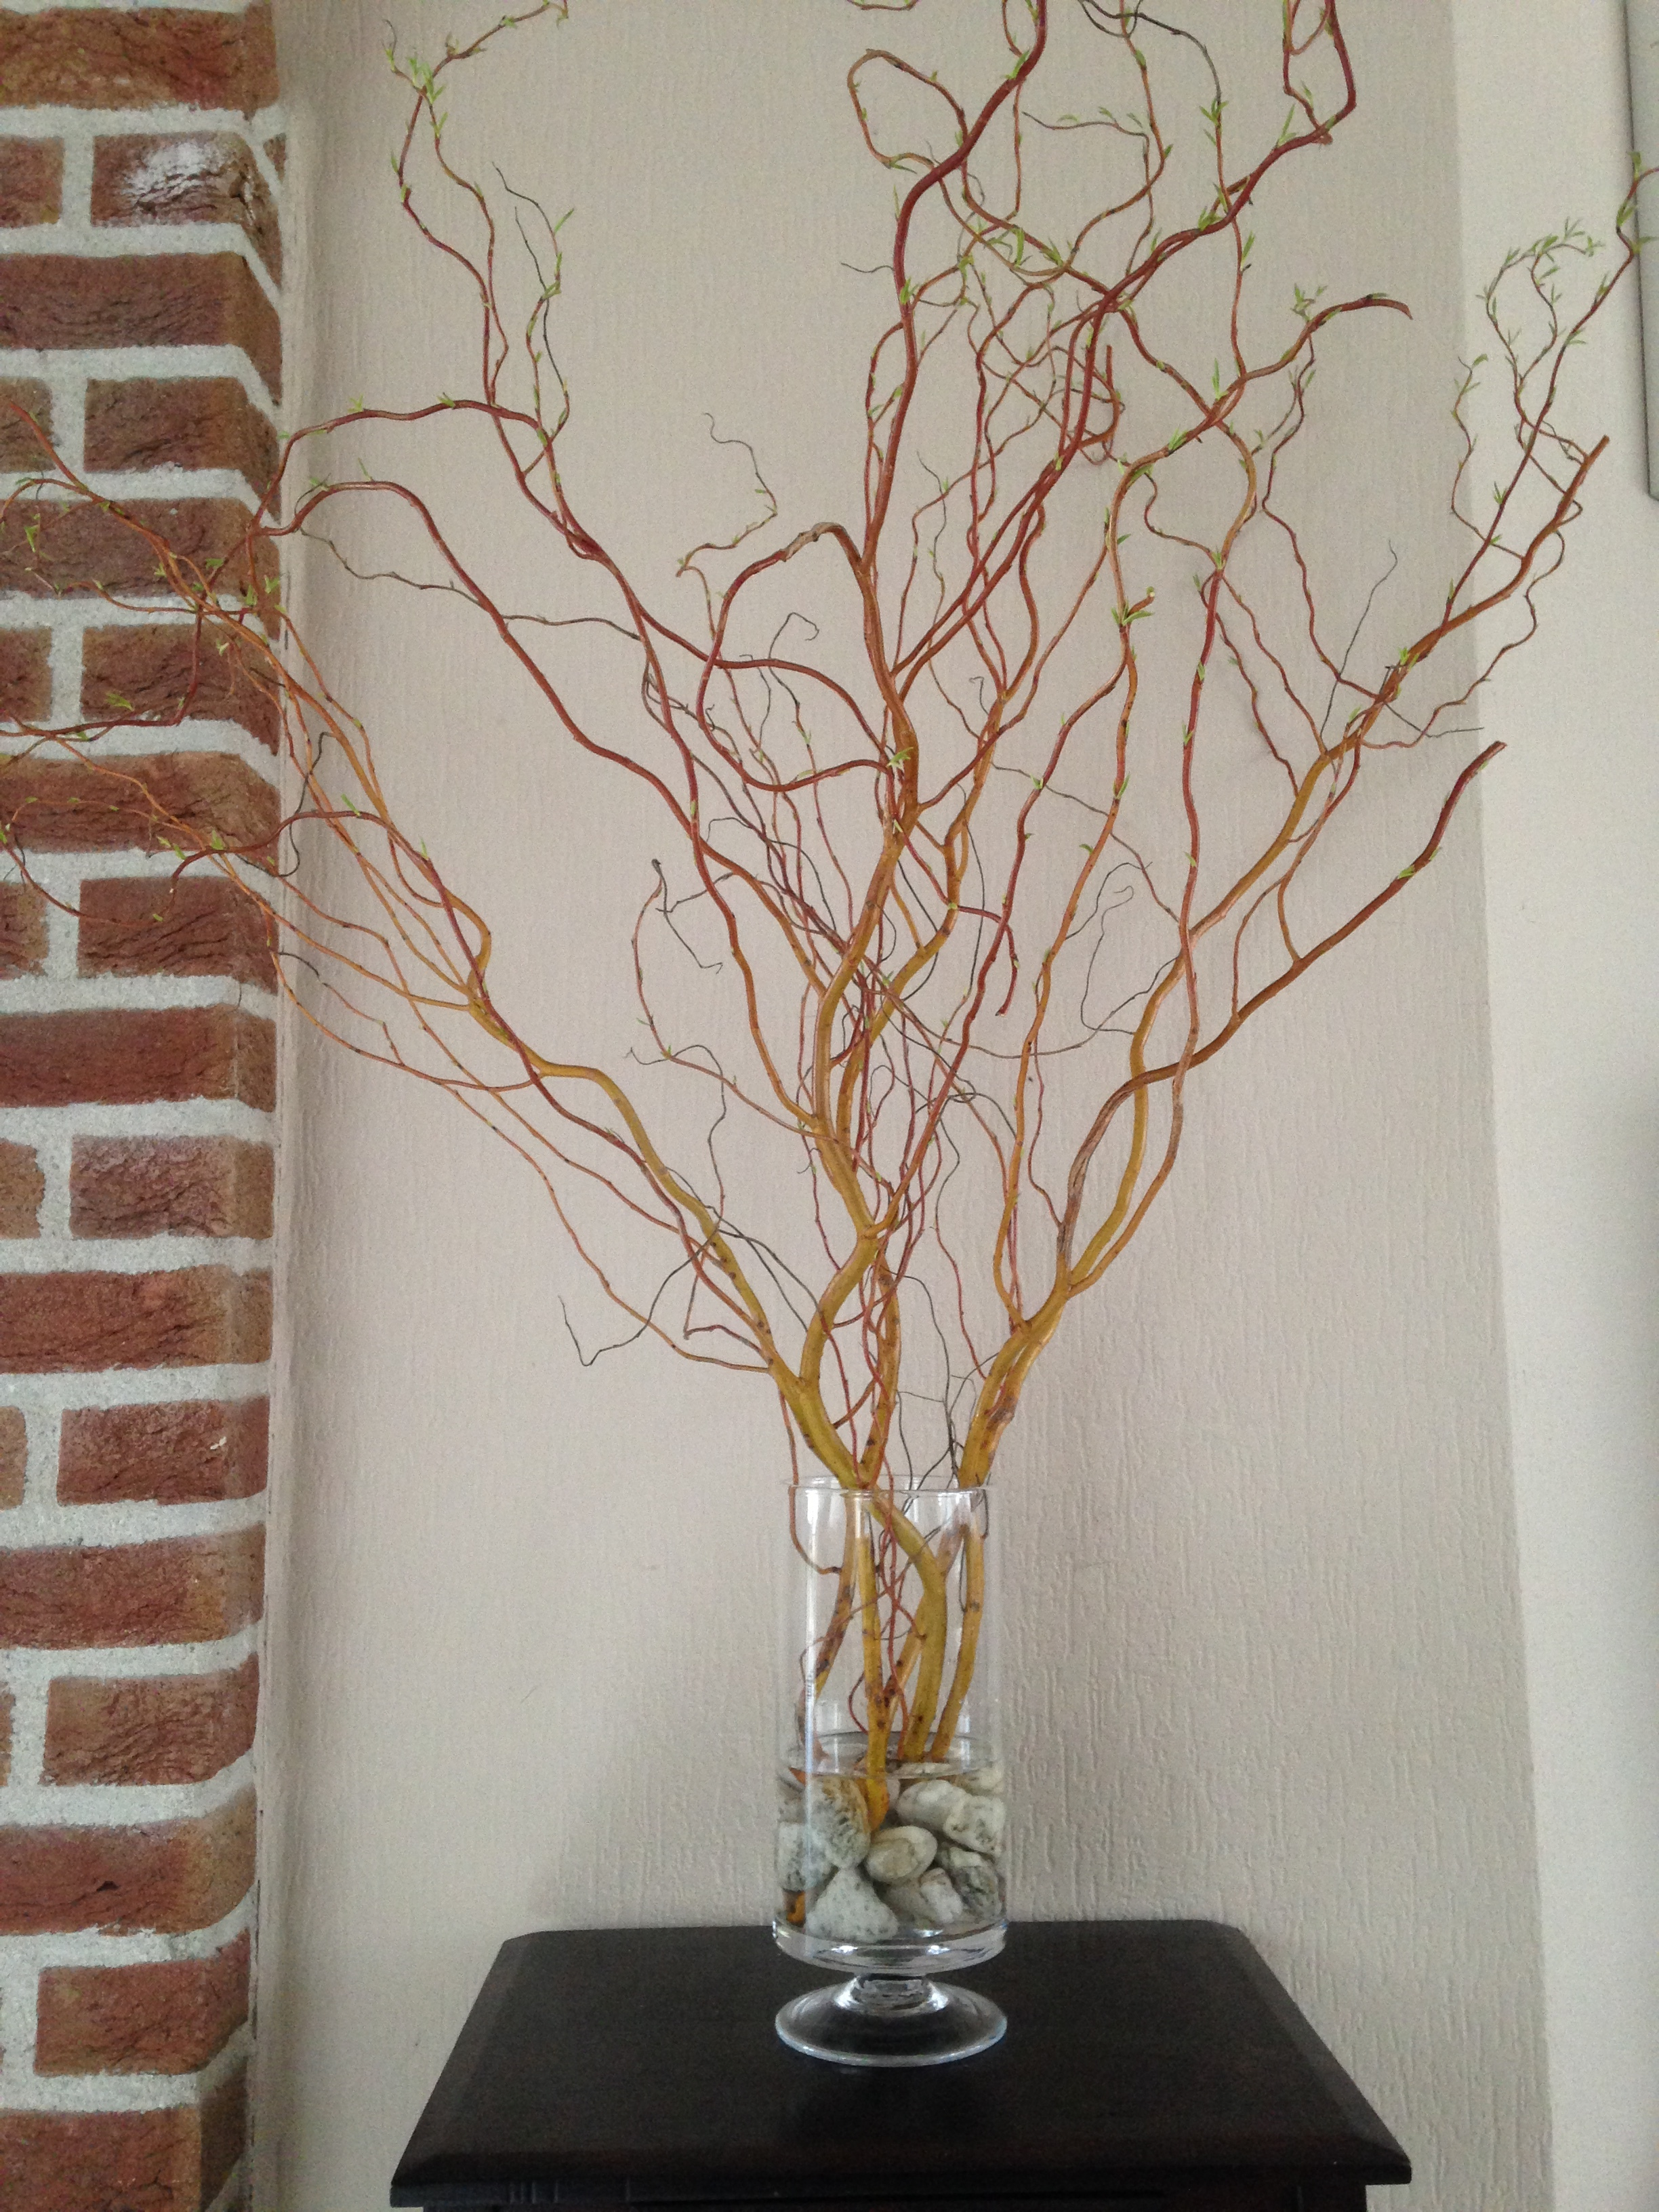 I purchased these twigs from our local garden store, popped in some stones from our garden, and placed it in a vase.